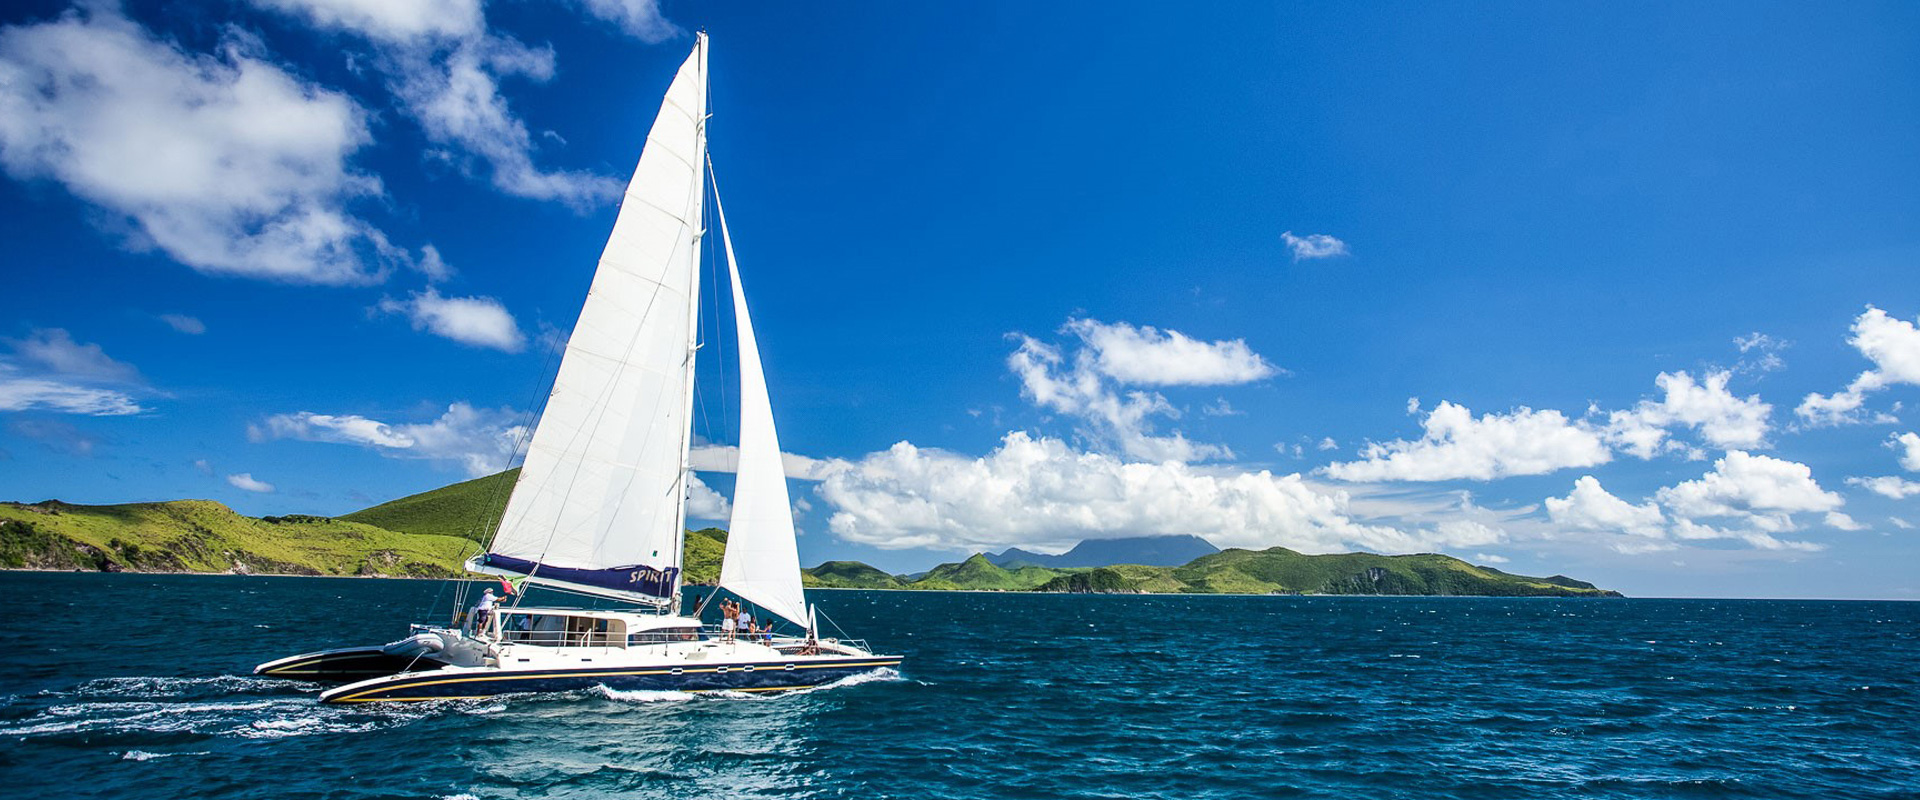 Catamaran Cruise Tour in St. Kitts and Nevis